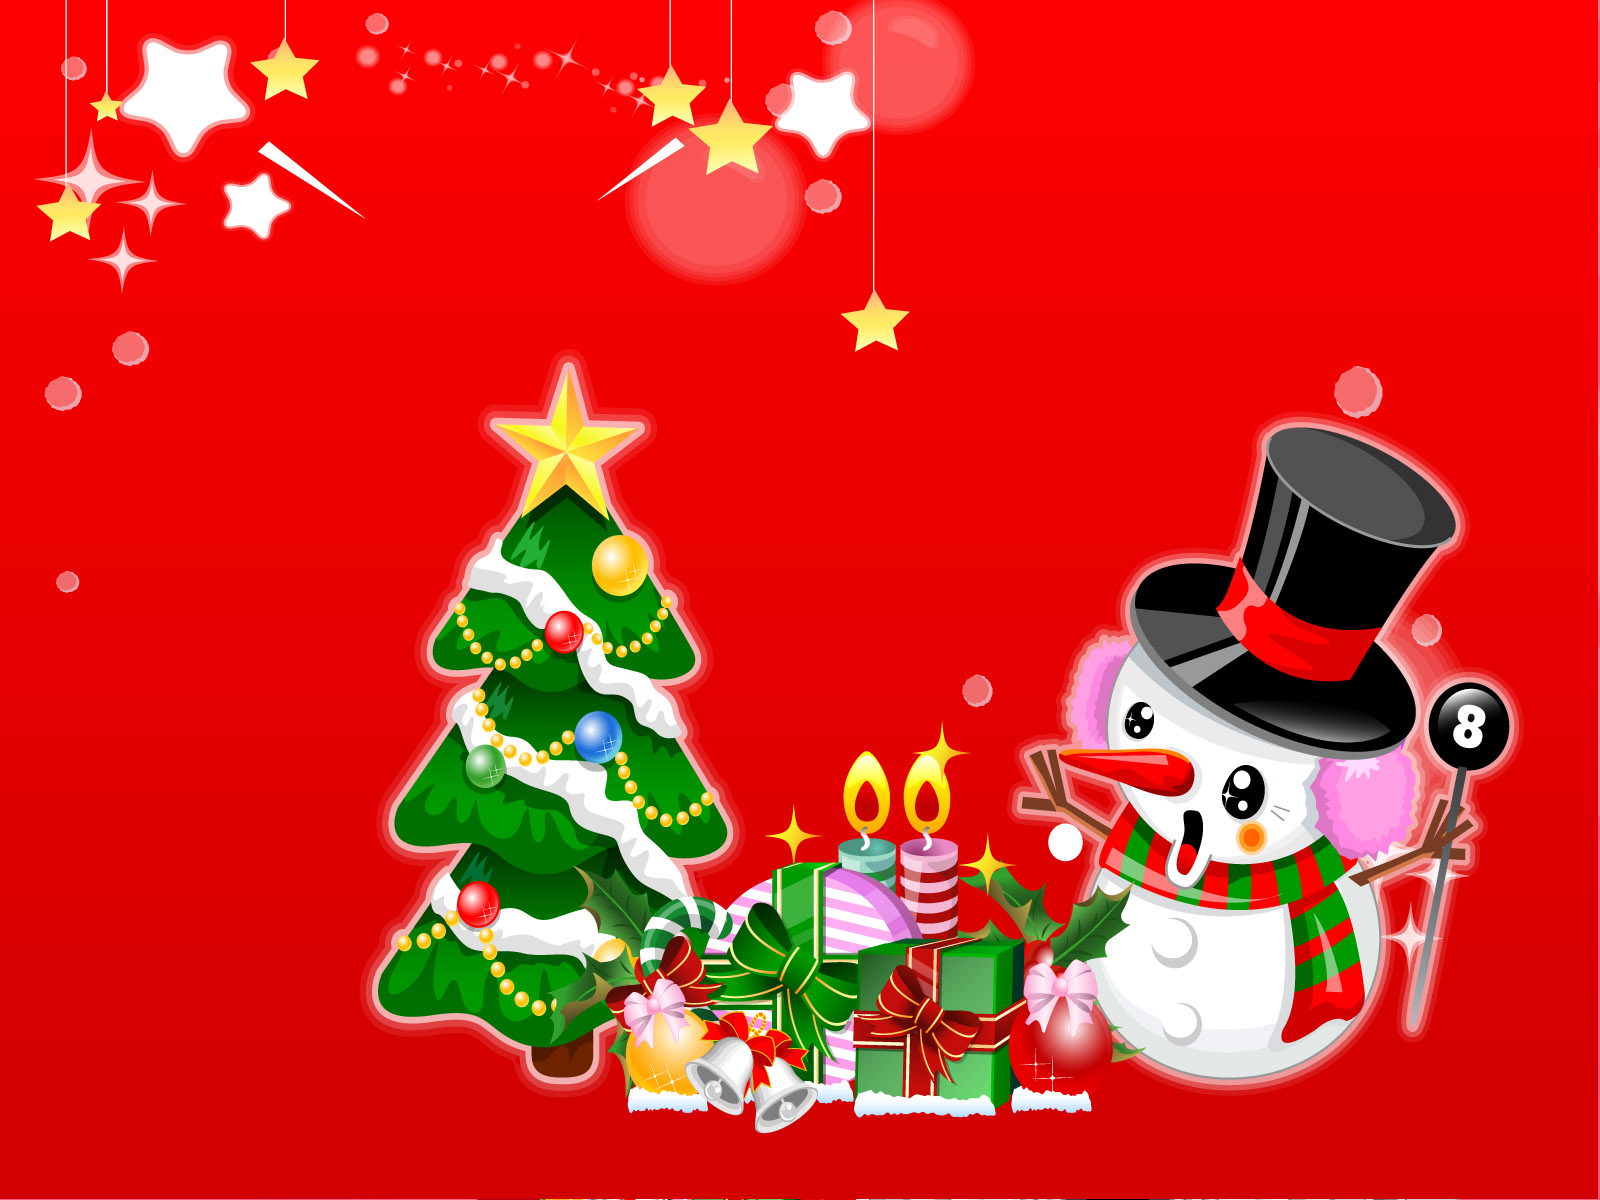 Animated Christmas Images Free Download Crazywidowfo